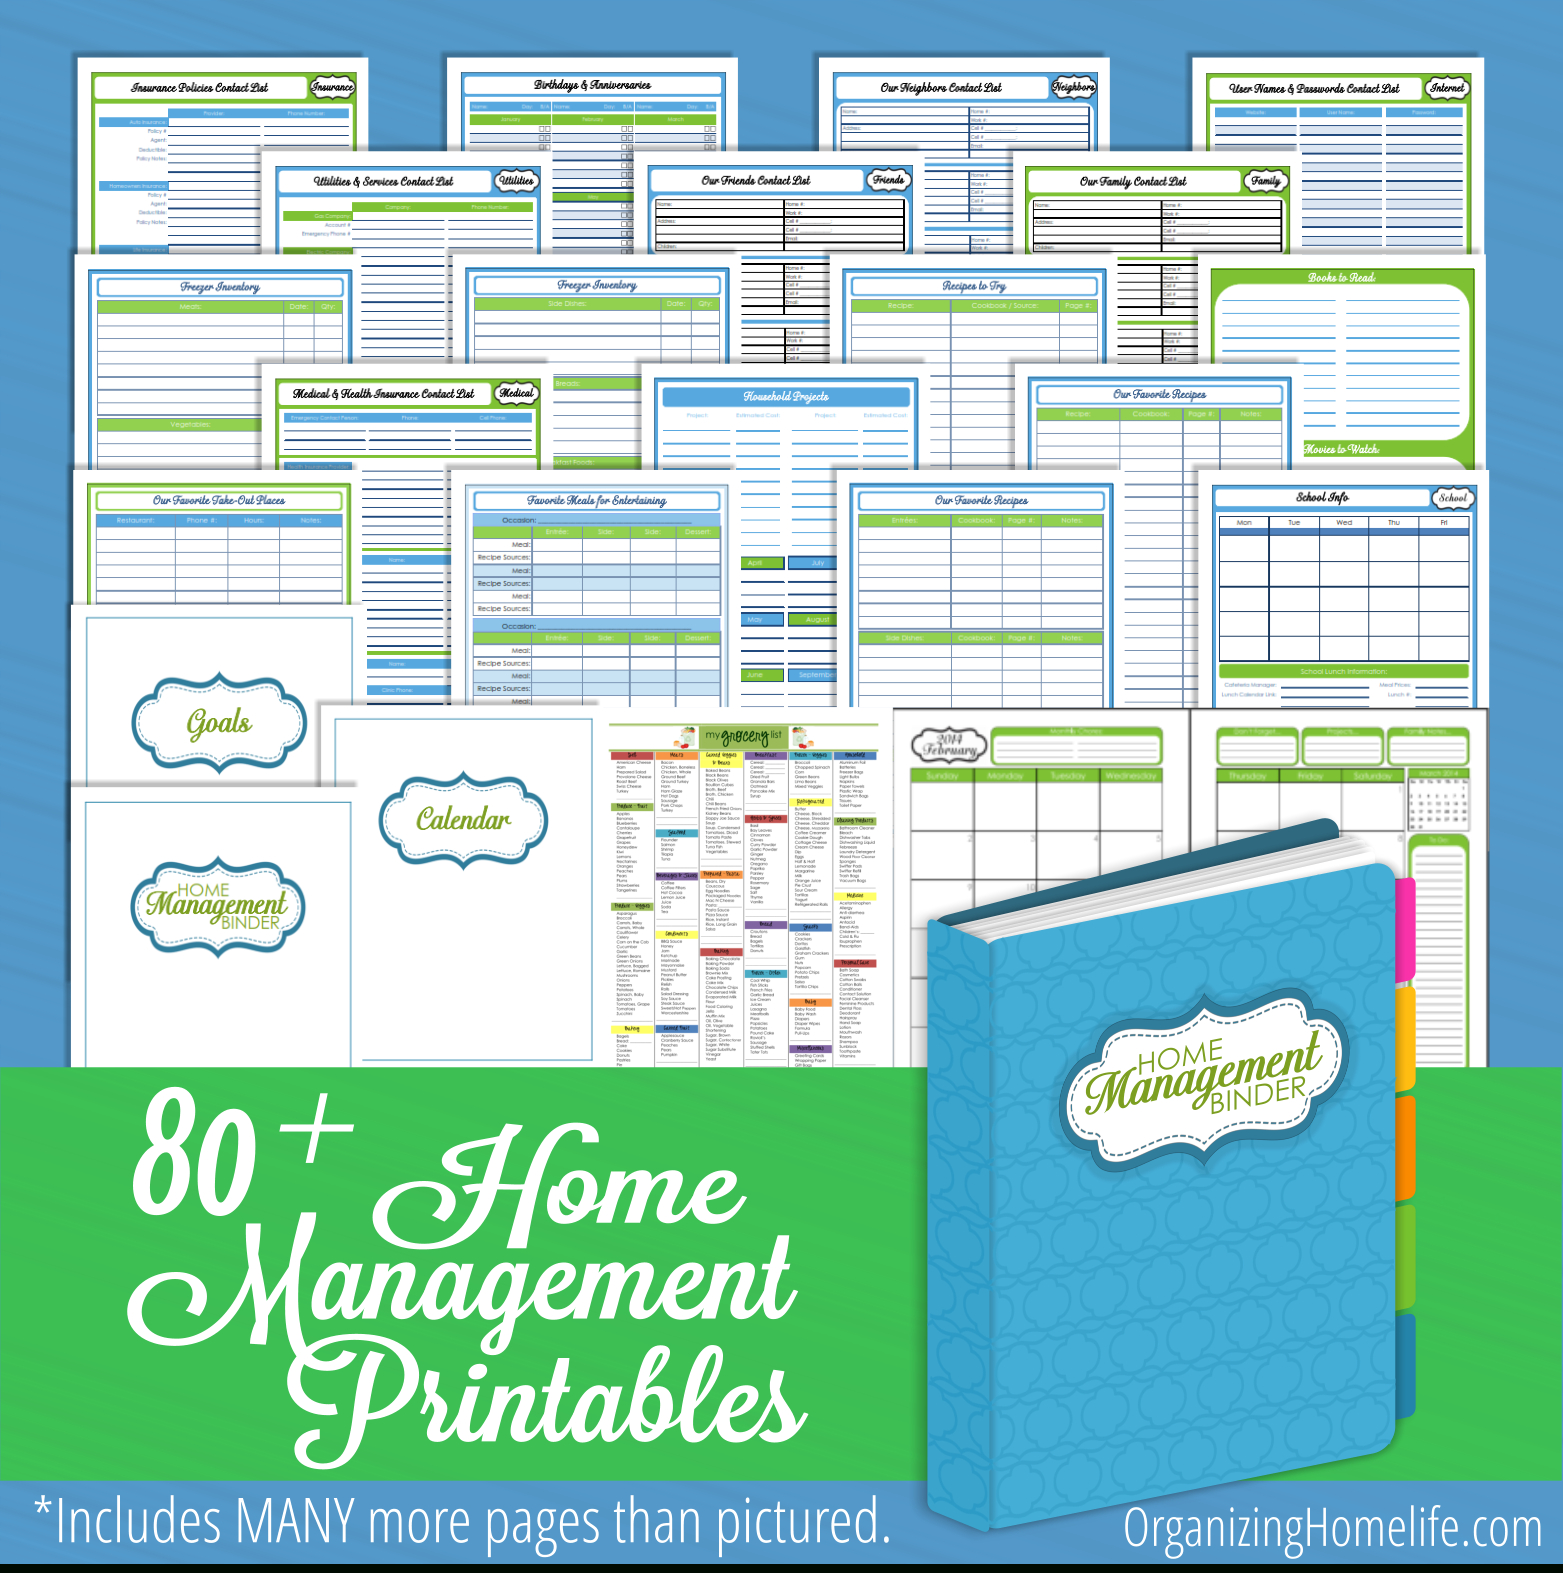 Organizing Homelife Home Management Binder Printables - Clean Mama - Free Printable Household Binder